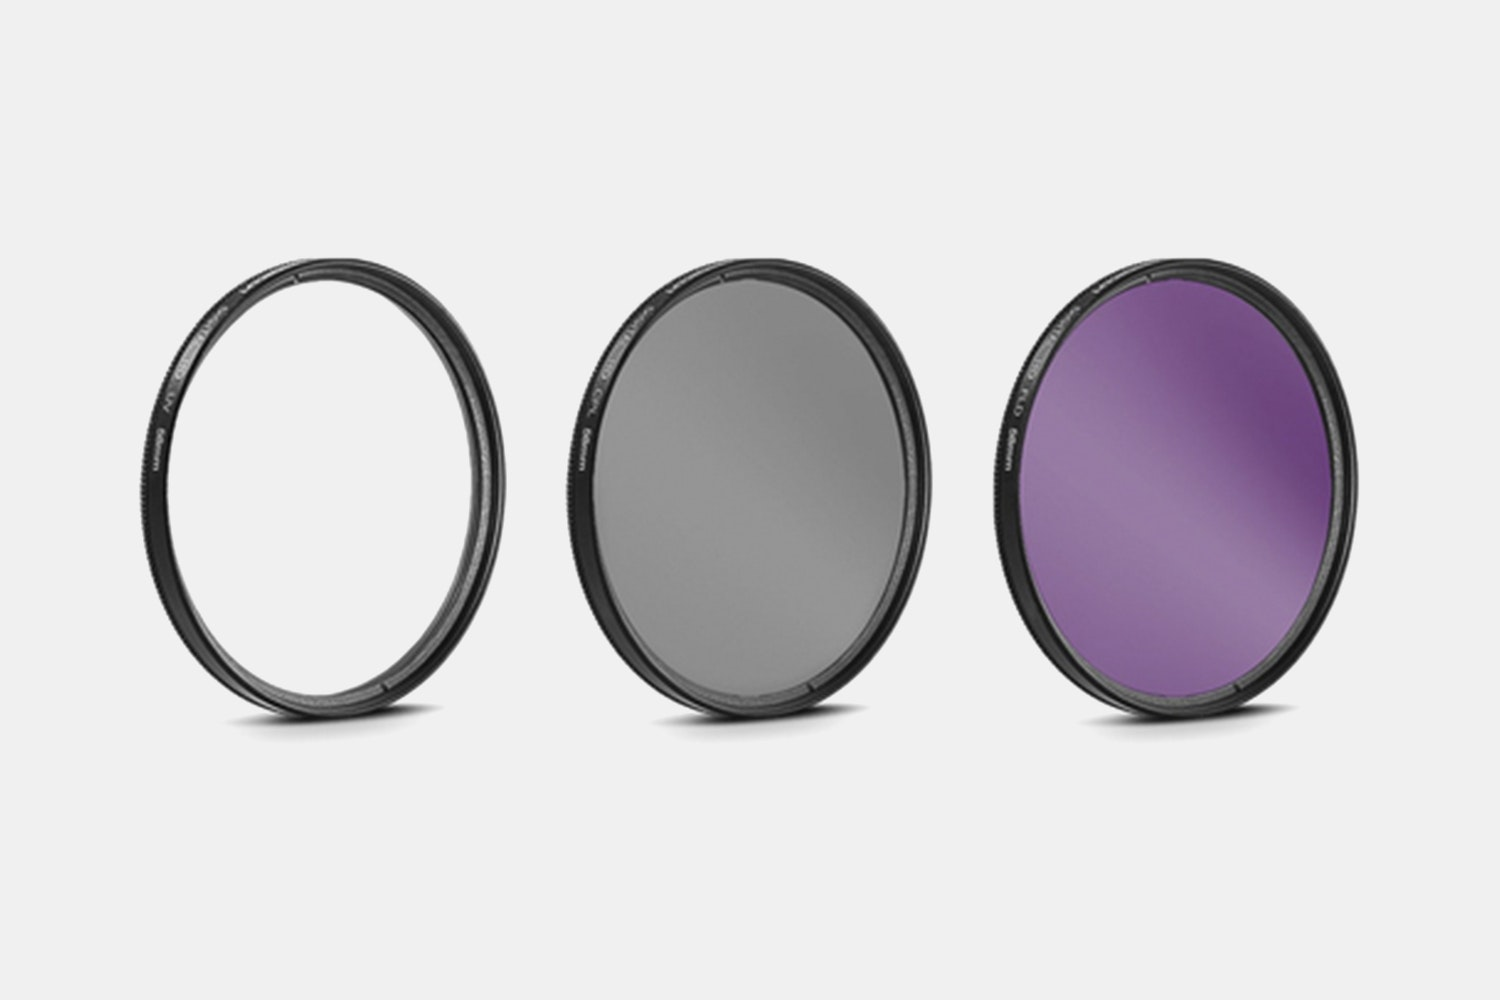 General Brand 58mm UV, CPL & ND8 Deluxe Filter Kit (Set of 3 + Carrying Case)